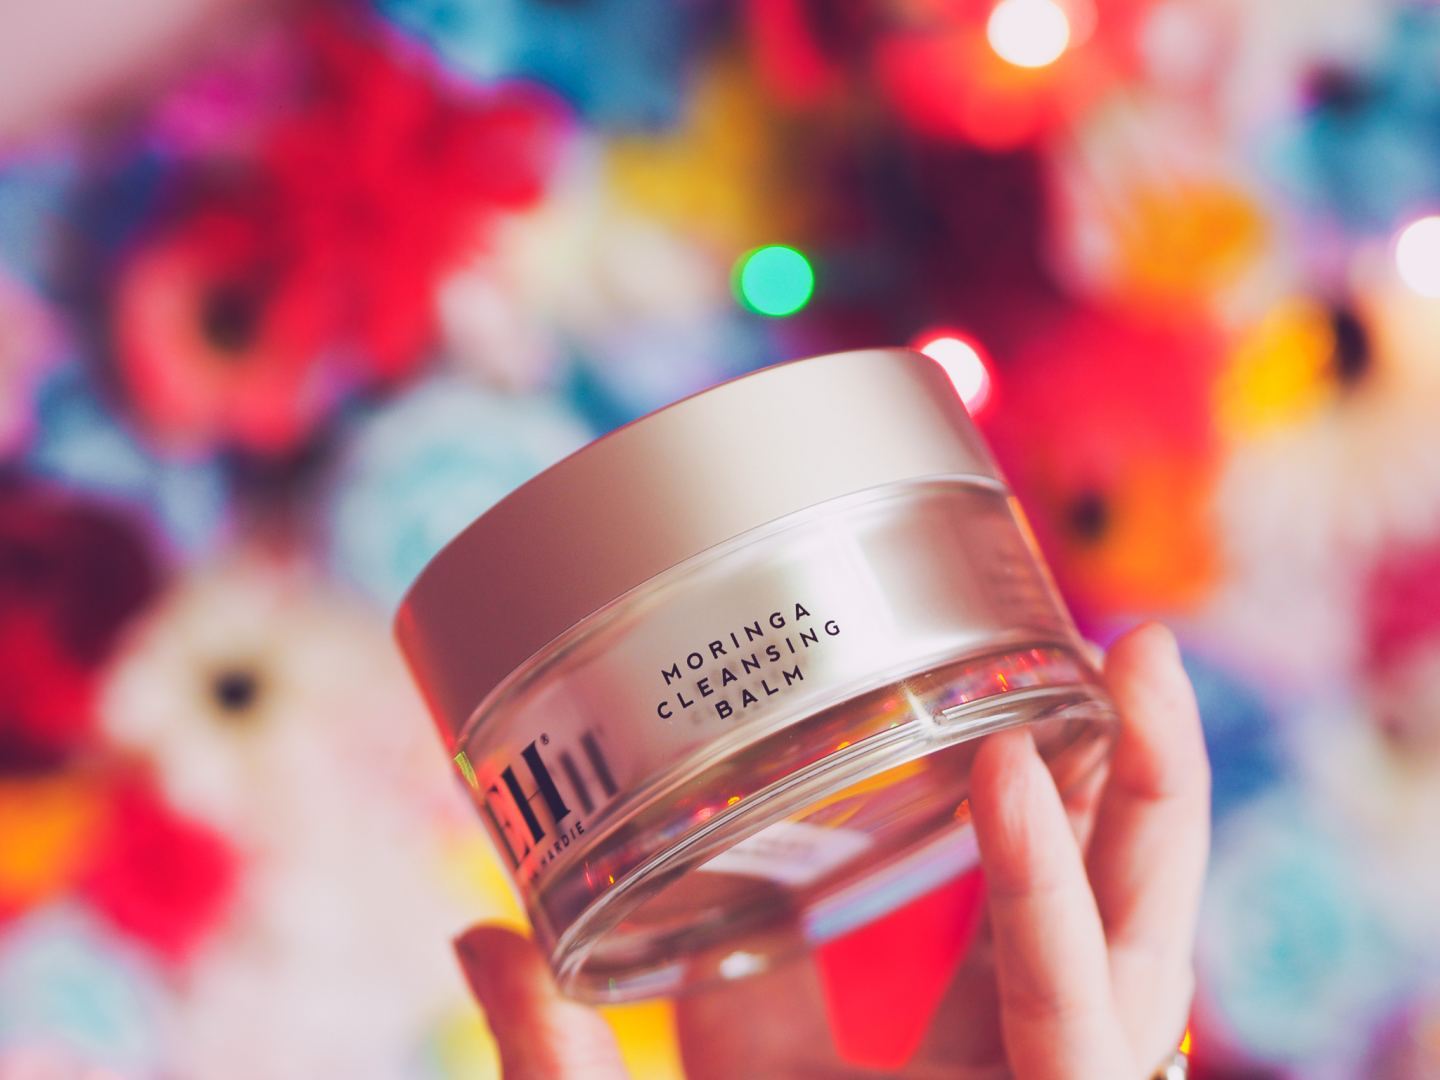 Emma Hardie Skin Care review cleansing balm